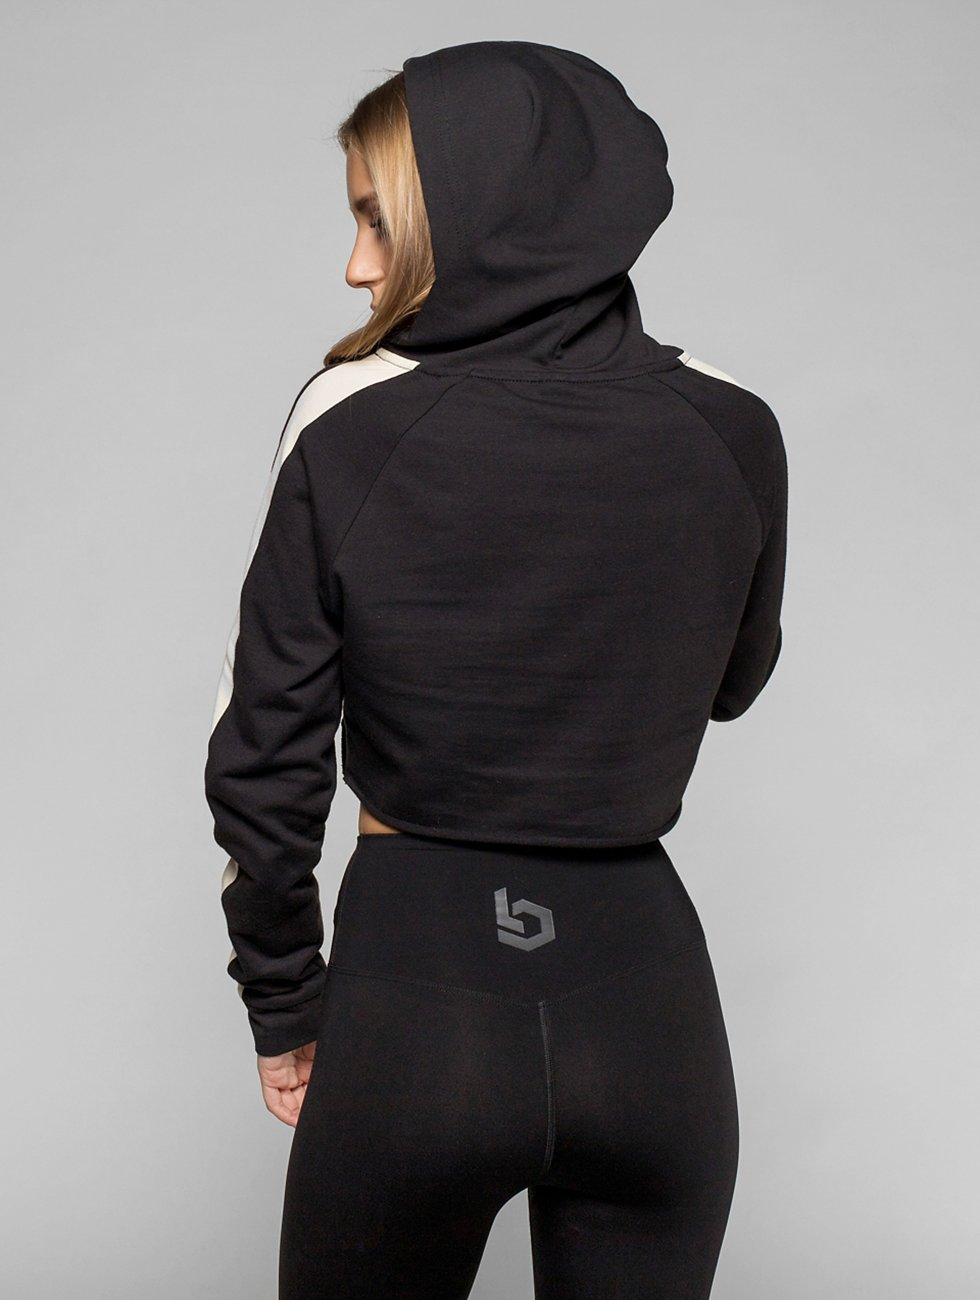 Beyond Limits Hoodie Raw Cut black